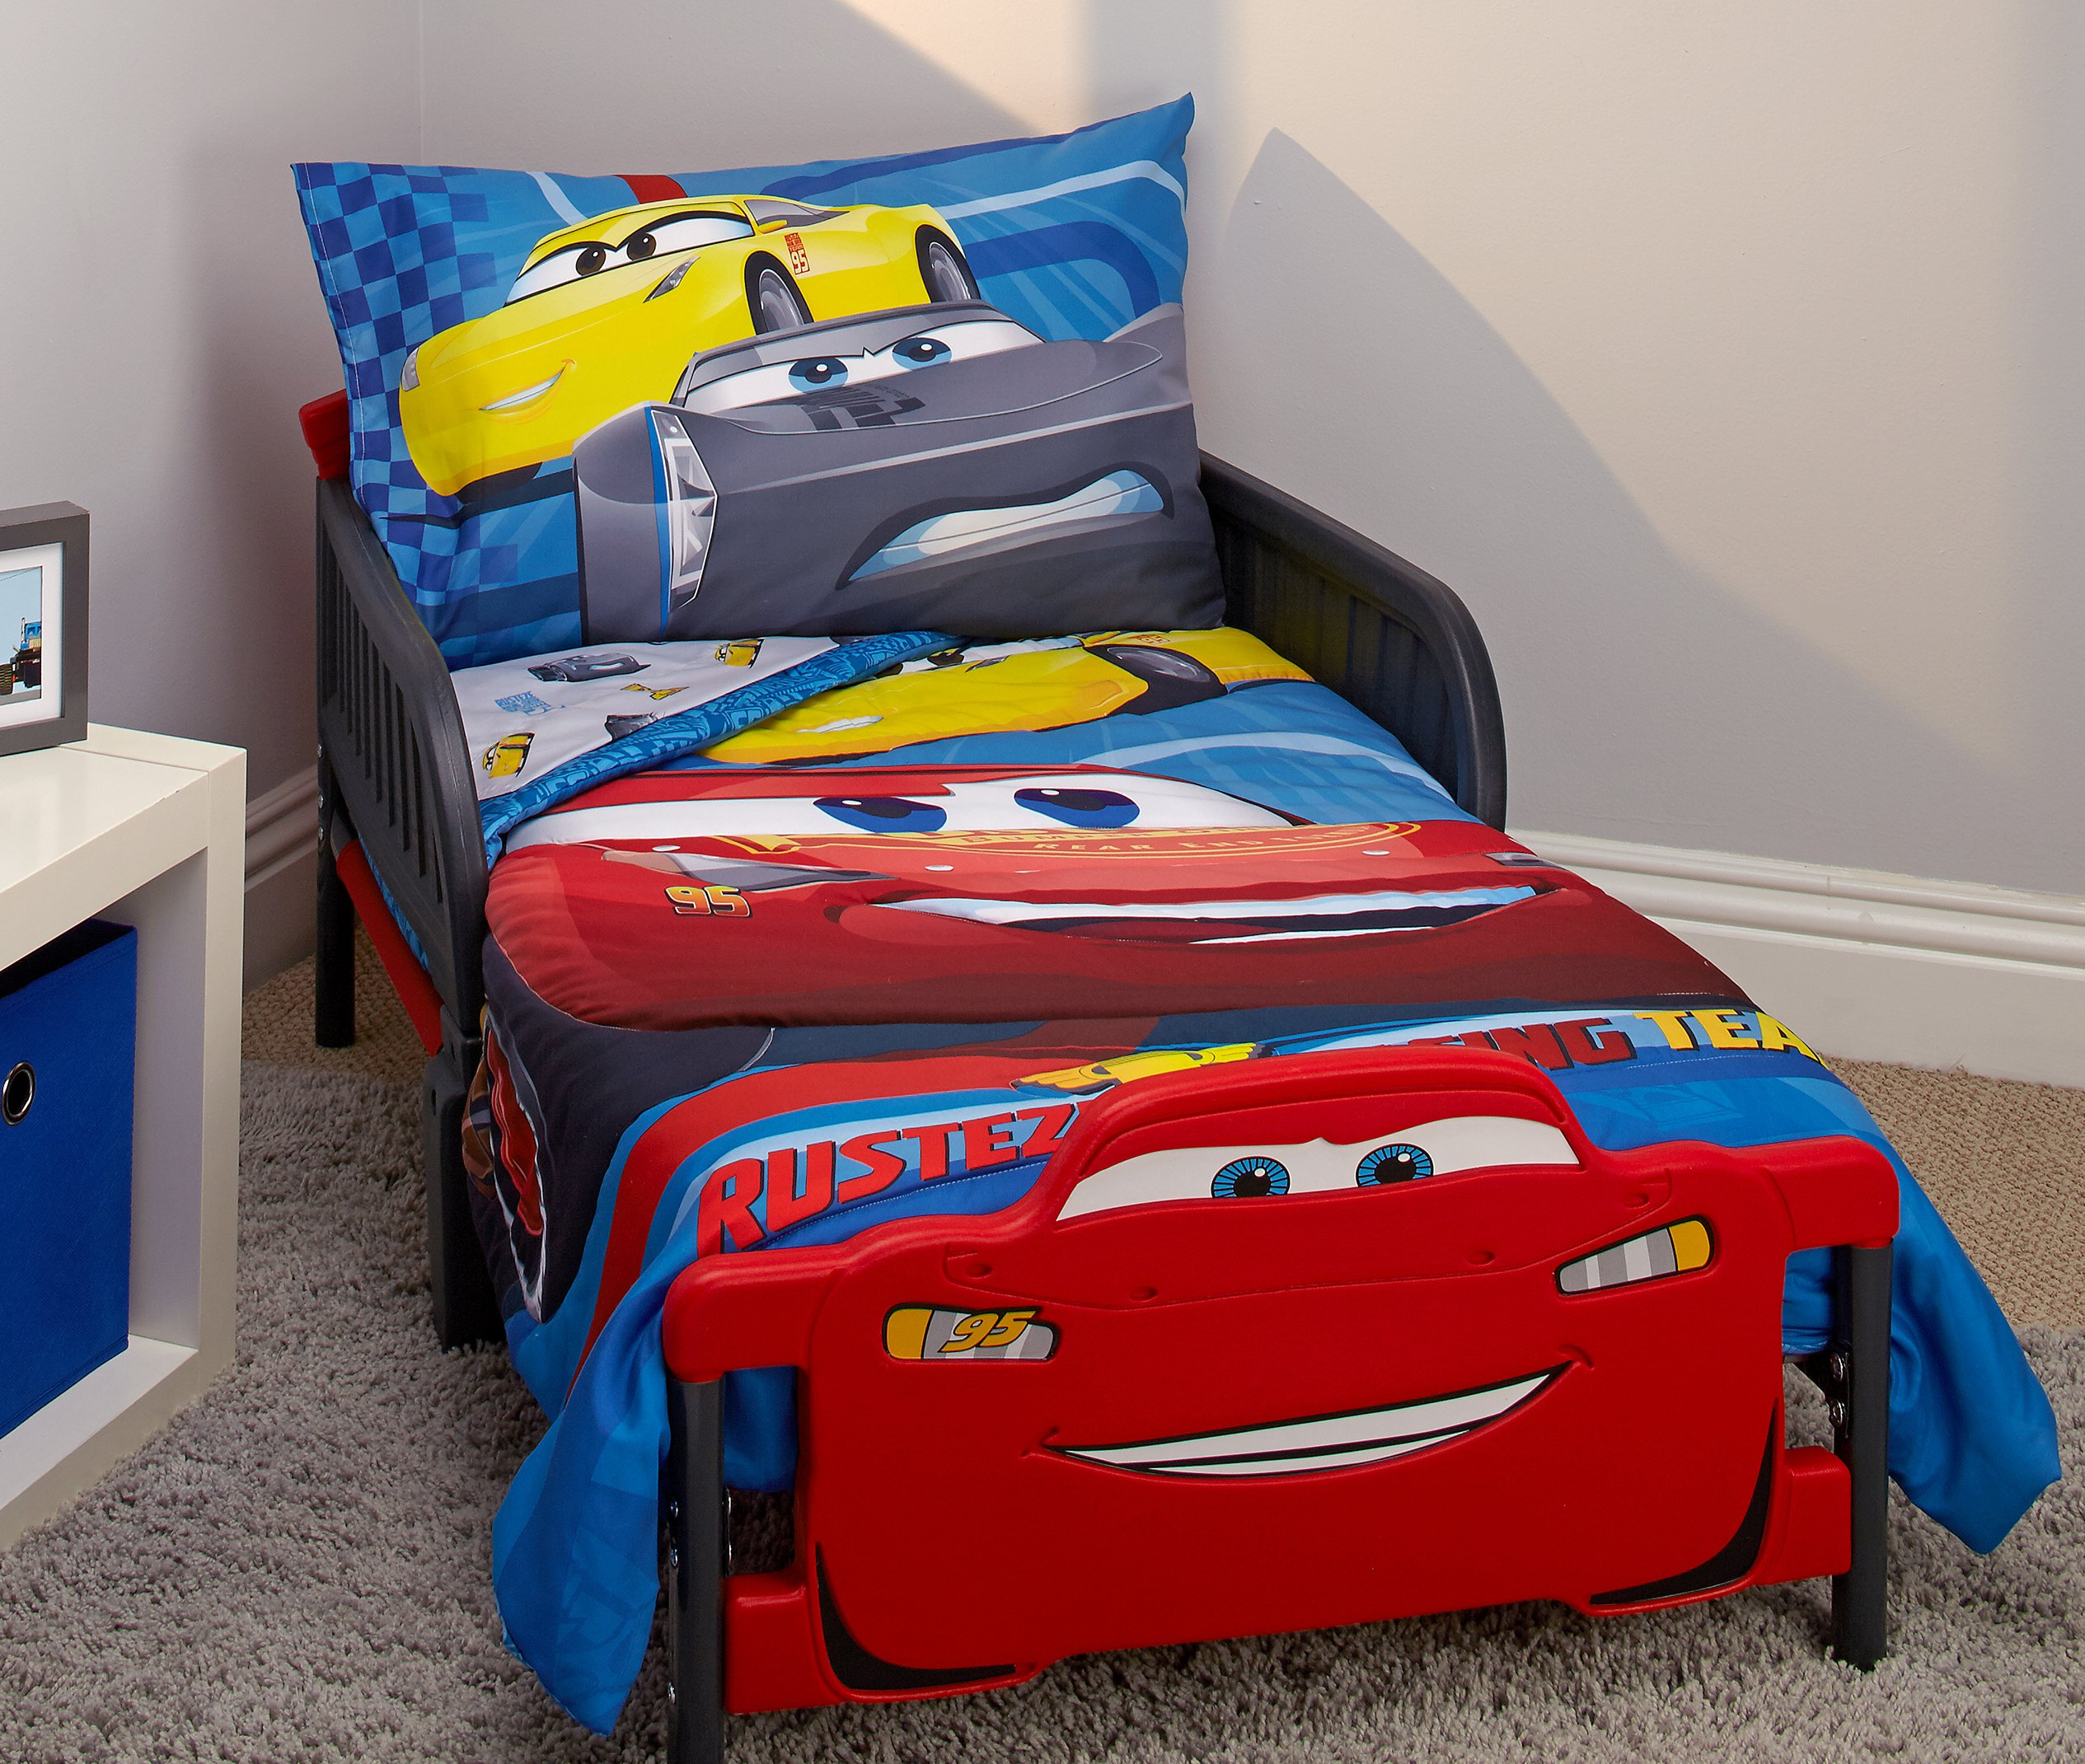 Disney Cars Rusteze Racing Team 4 Piece Toddler Bedding Set, Blue/Red/Yellow/White by Disney